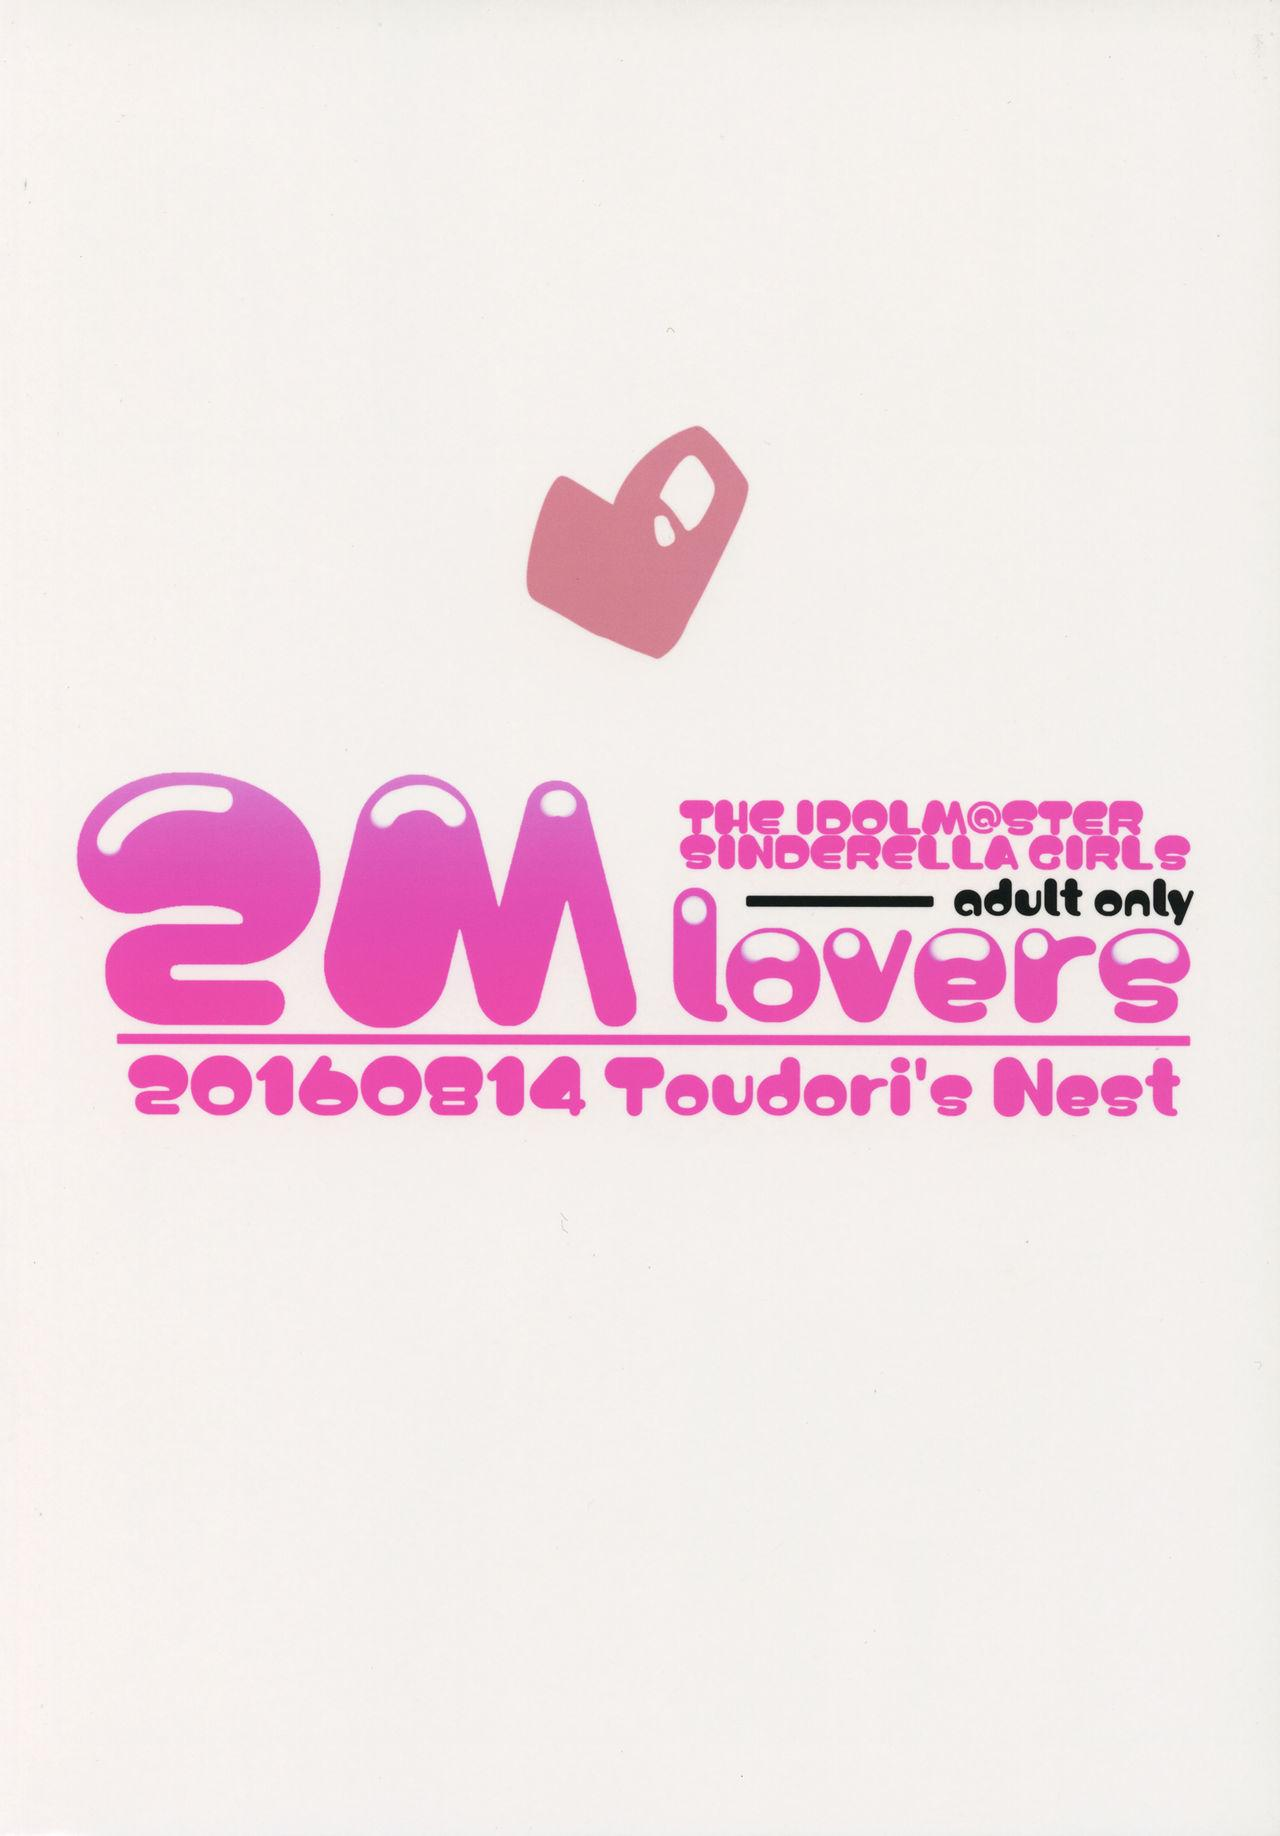 2M lovers 21